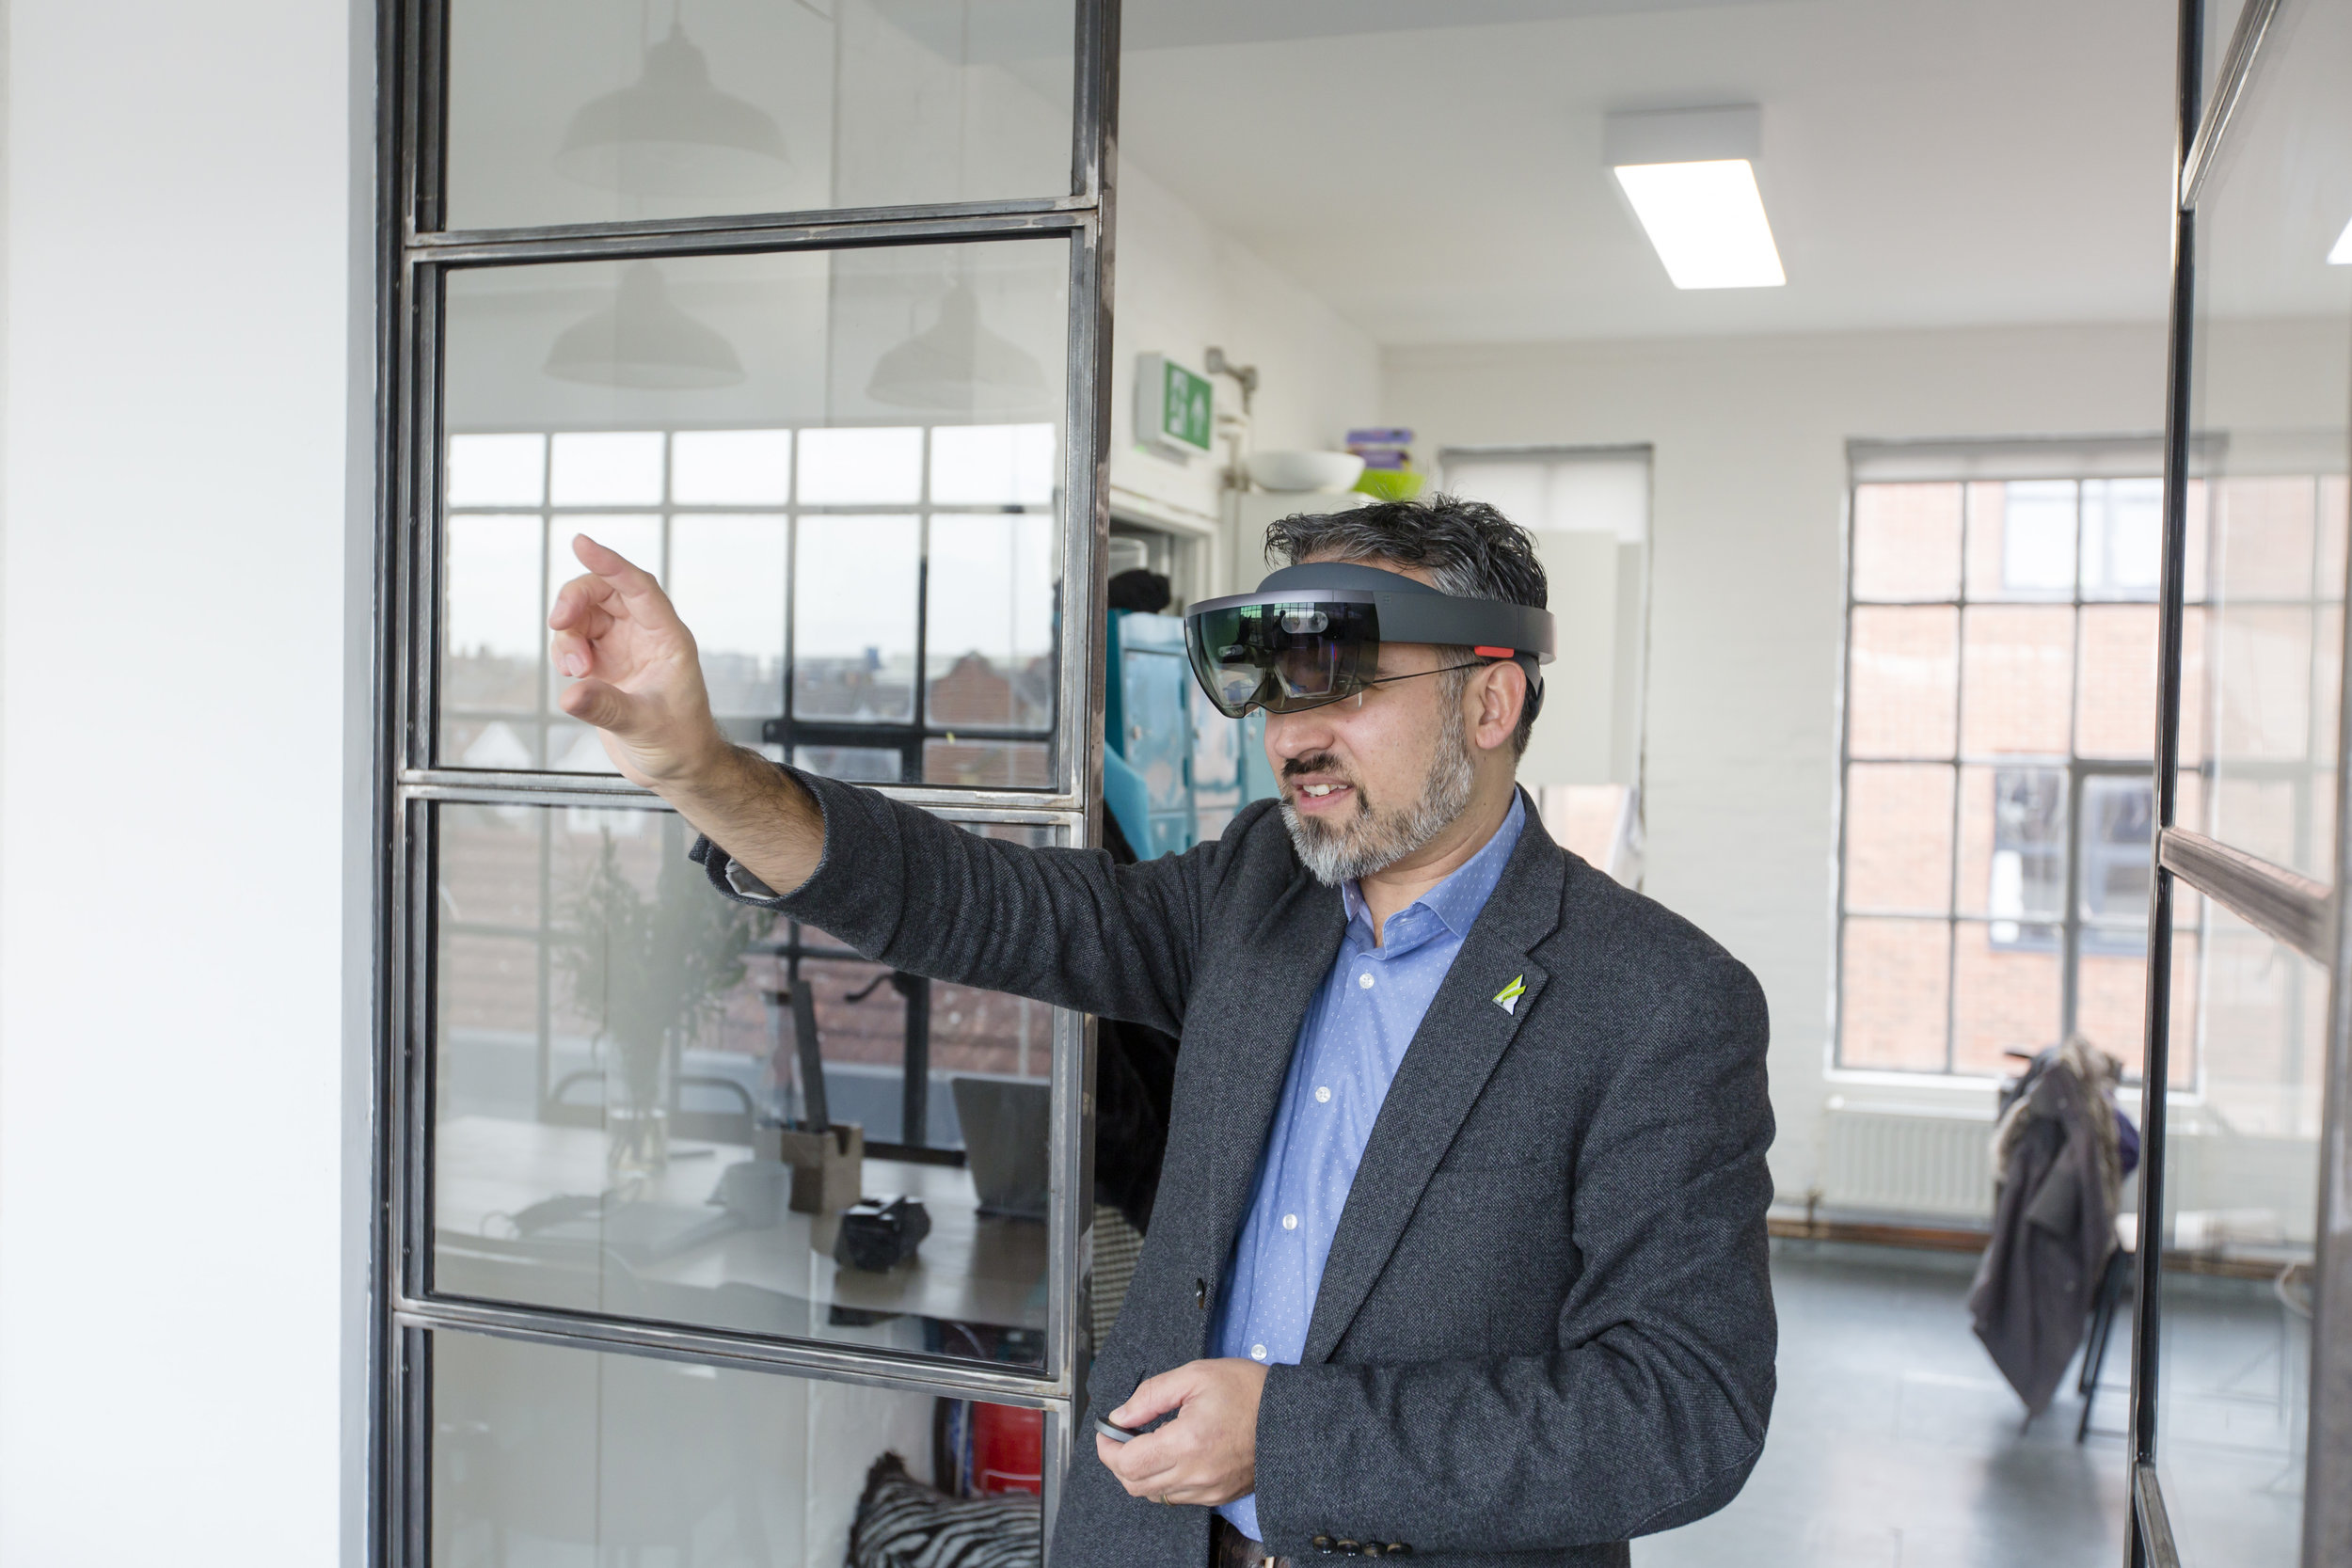 east-london-architect-hololens-1.jpg